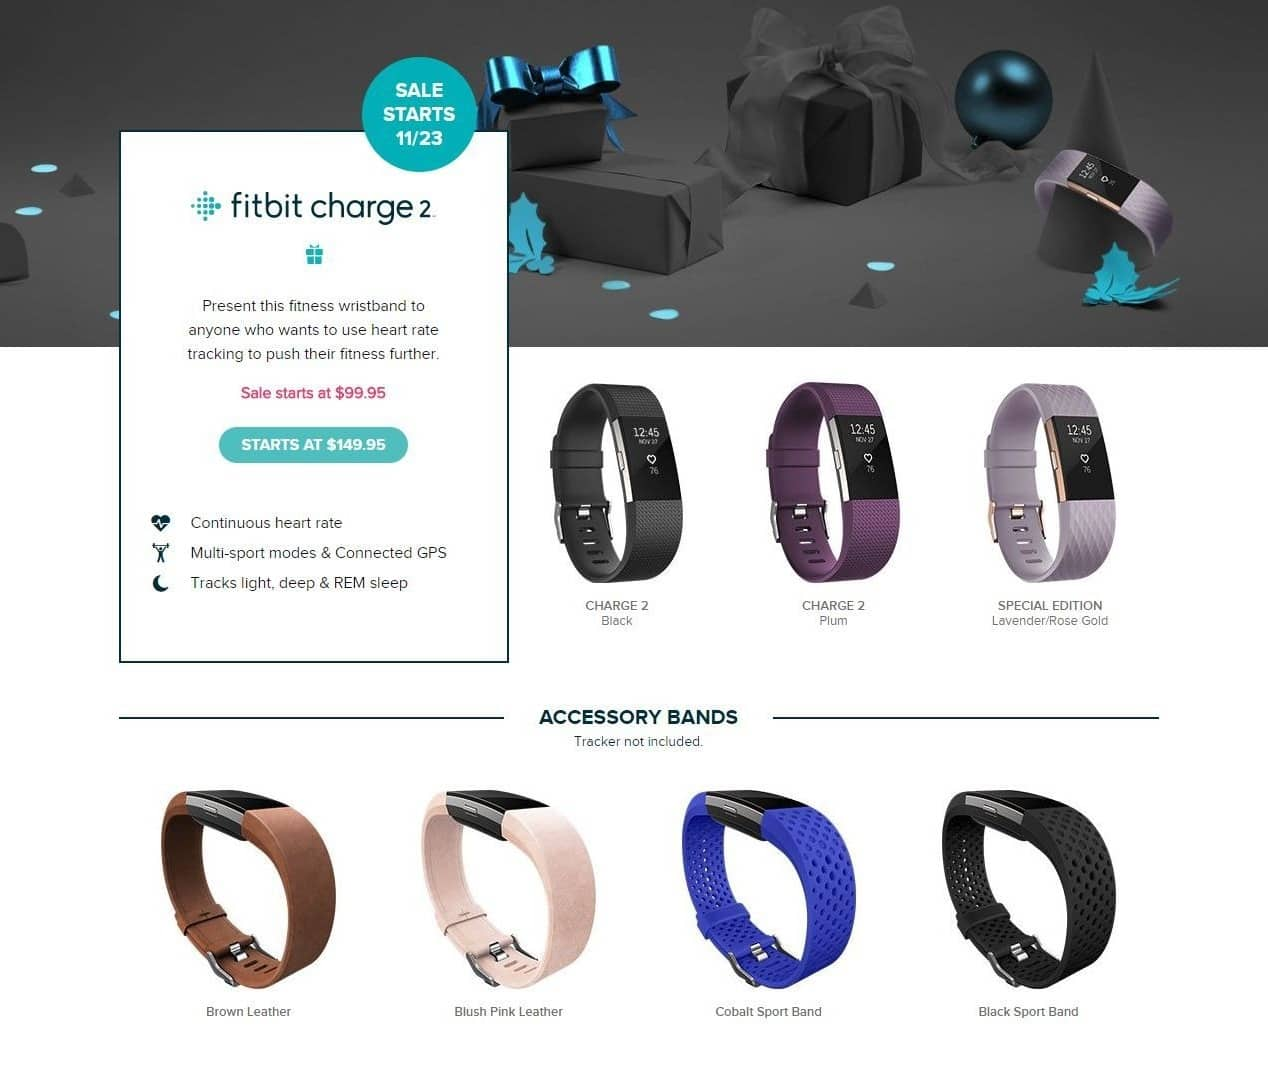 Fitbit Black Friday: Fitbit Charge 2 - $99.95 & UP